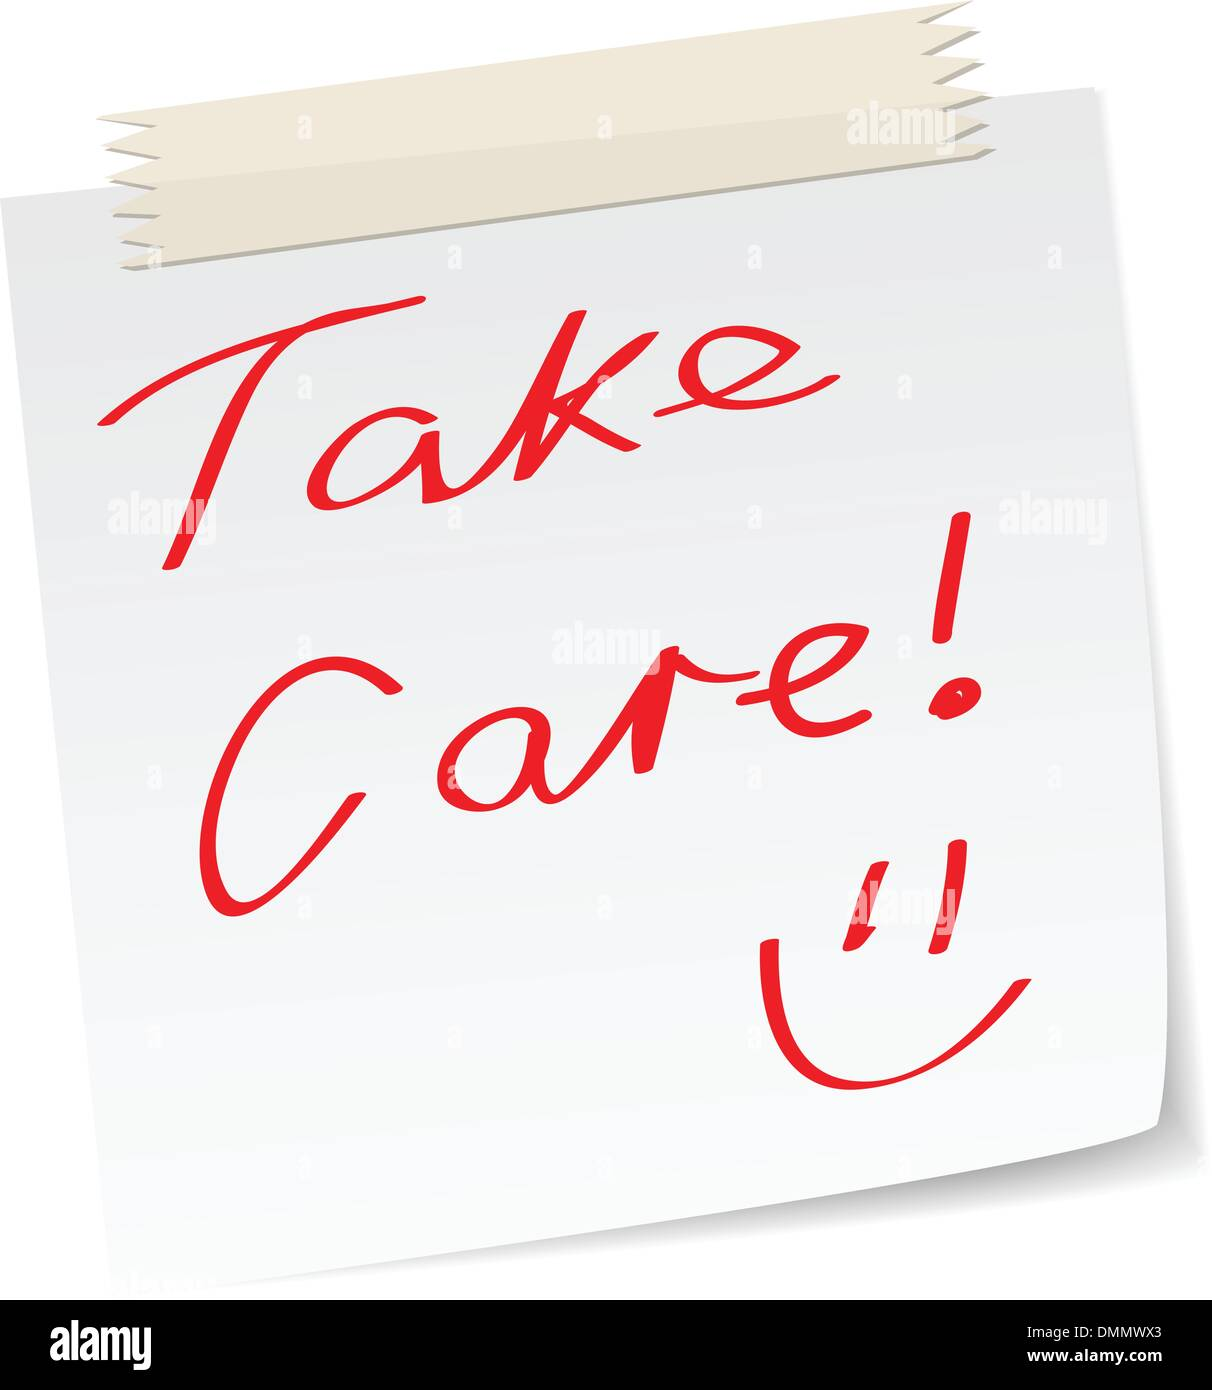 take care note - Stock Image